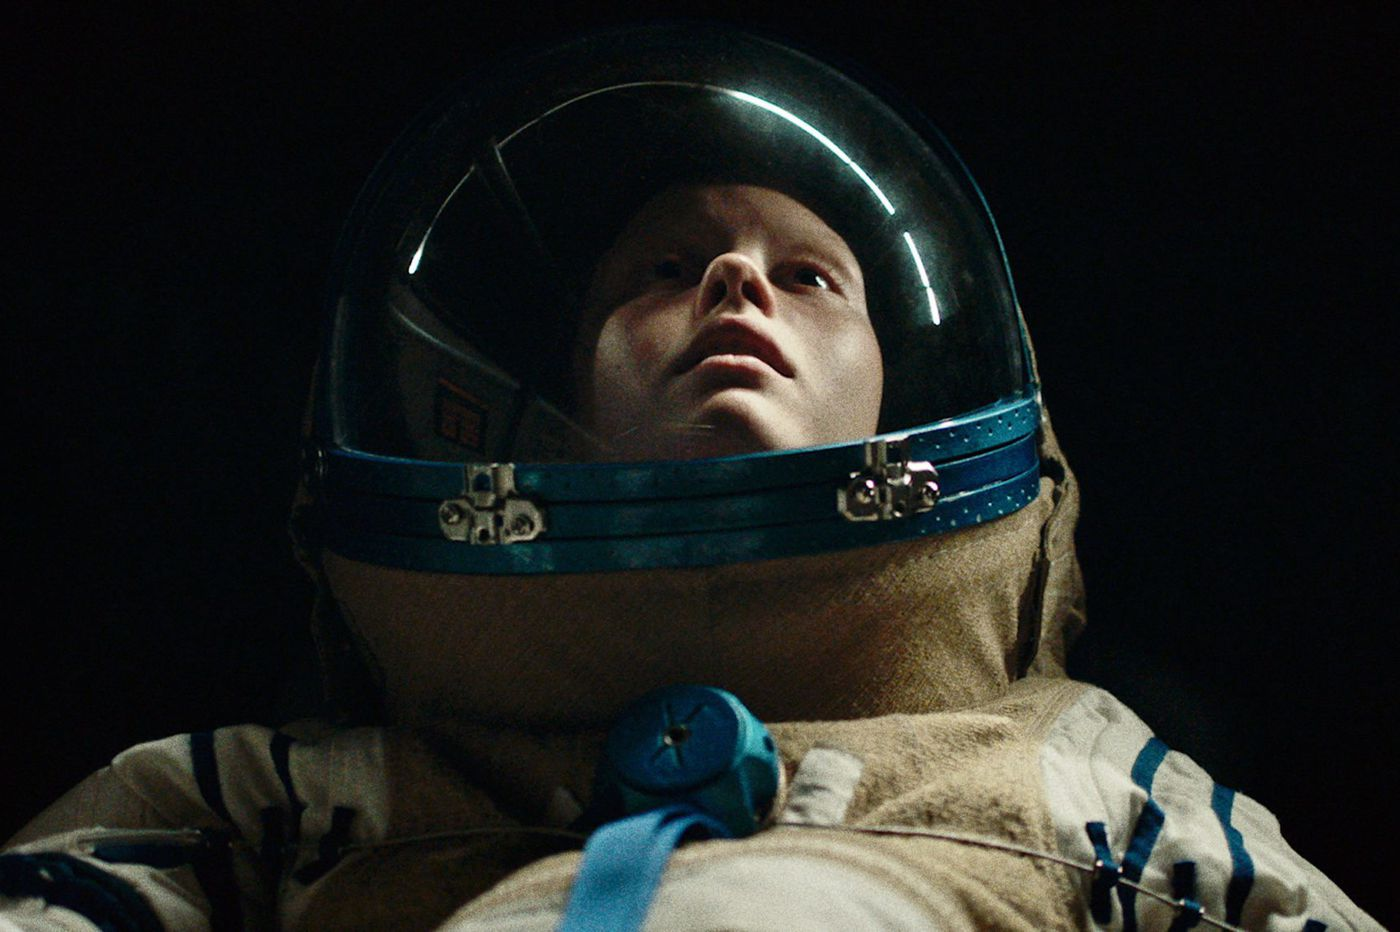 'High Life': A freaky space odyssey starring Robert Pattinson | Movie review